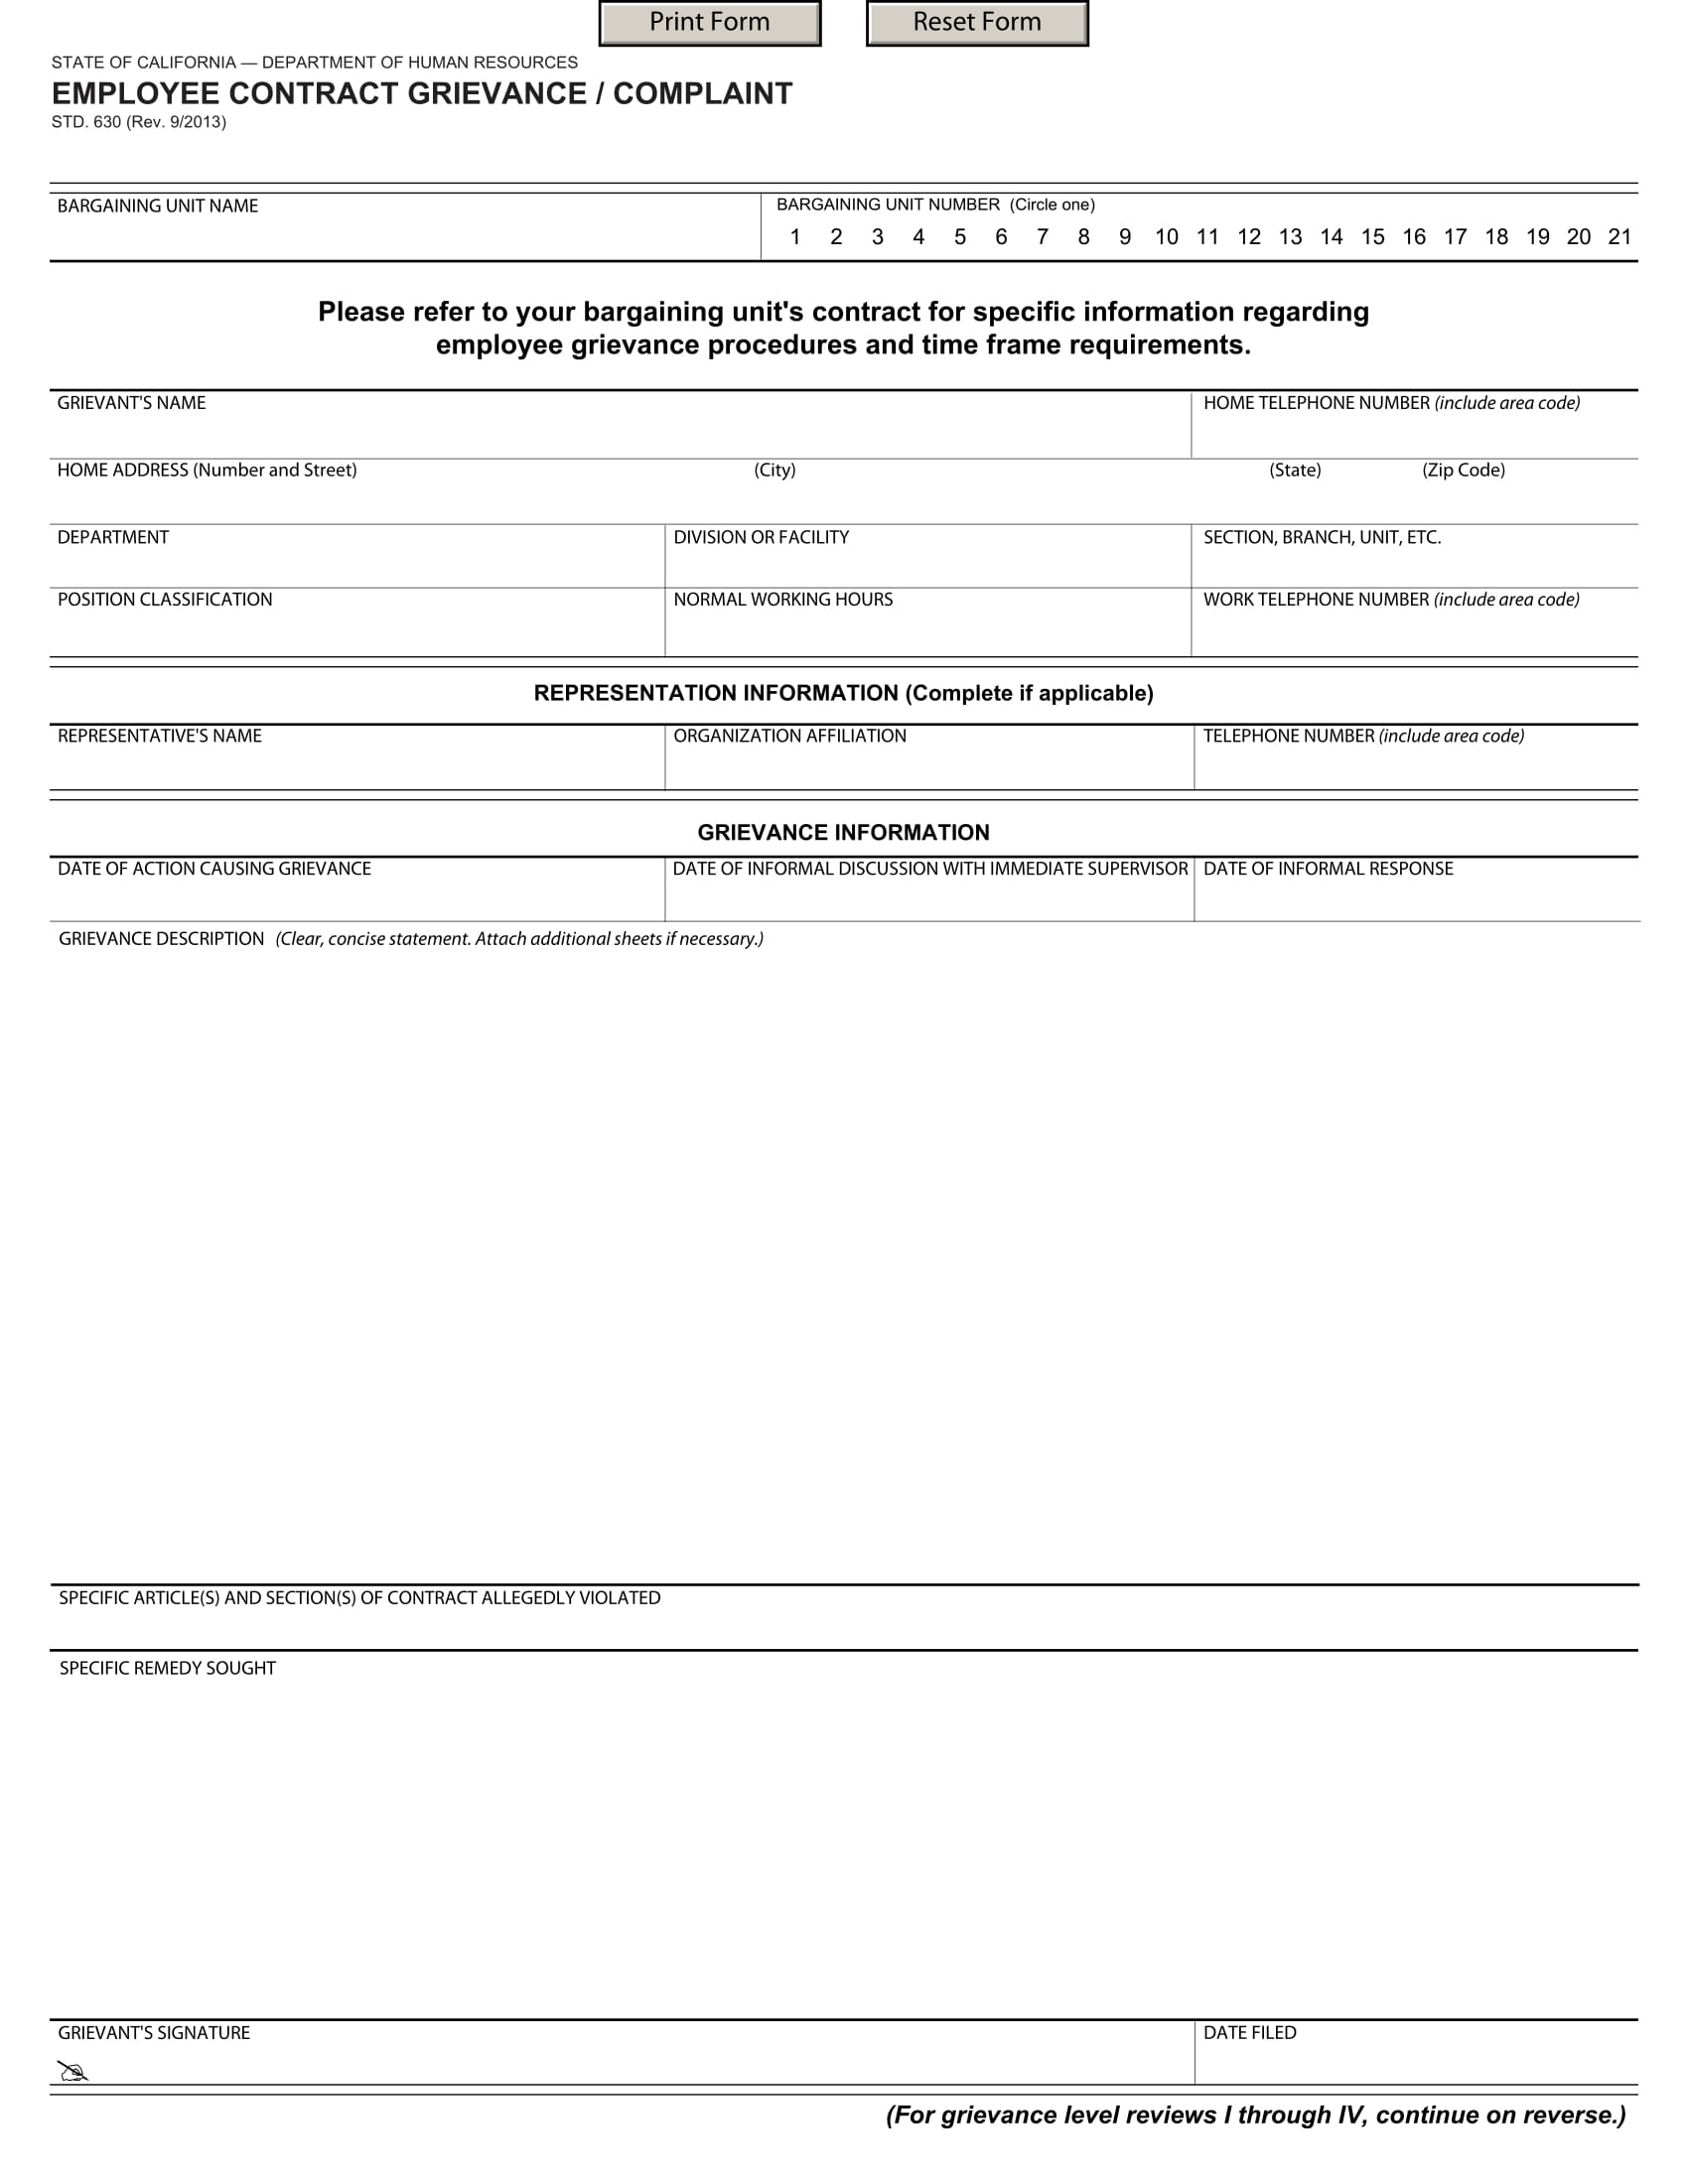 employee contract grievance complaint form 1